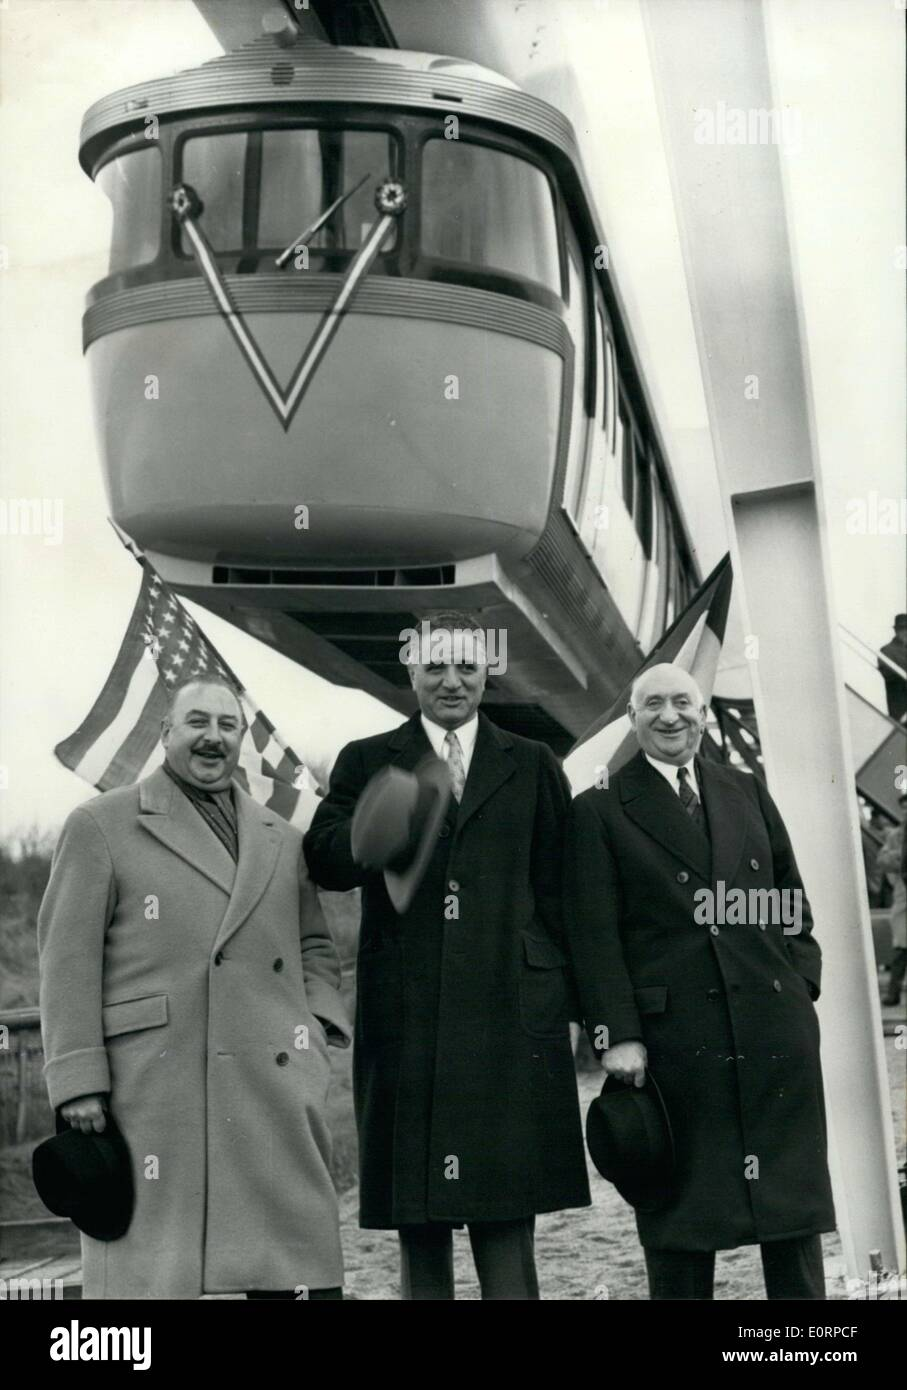 Feb. 23, 1960 - Georges Christopher, Mayor of San Francisco attended the presentation of the first French air-rail metro. This revolutionary metro conception will be presented in all the world's major cities in the following months. The 18 French businesses that built the train hope to sell it to San Francisco. Gaston Devraigne, President of Paris's Municipal Council, Mr. George Christopher, mayor of San Francisco, and Mr. Massoni are pictured standing in front of the plan from left to right. - Stock Image